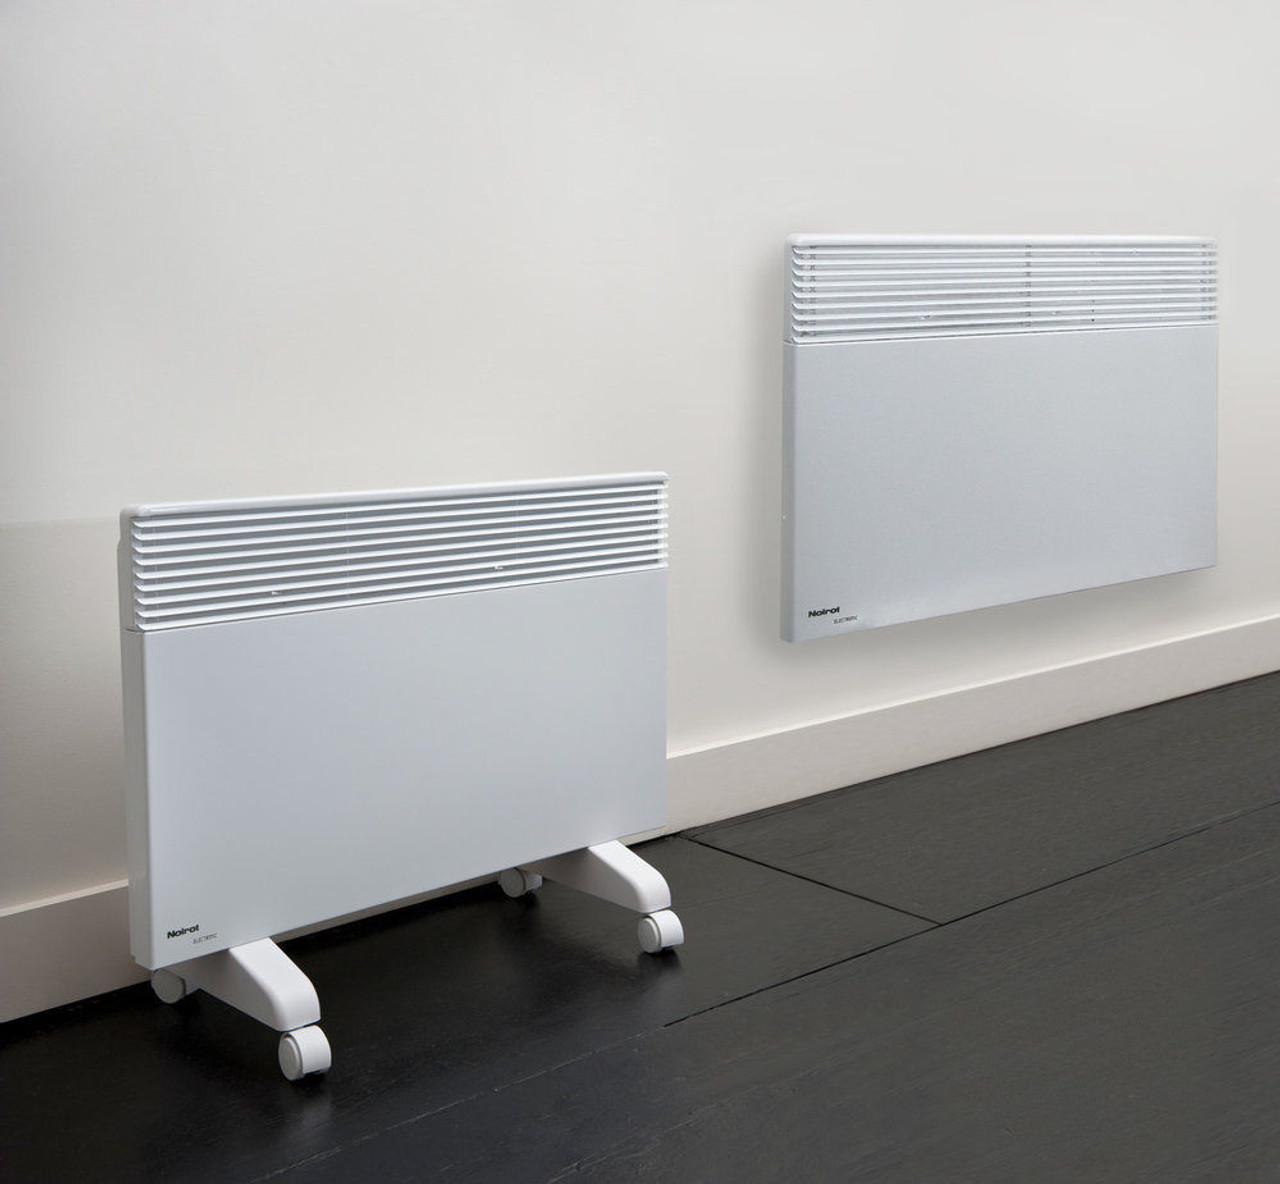 Noirot 7358-7 Spot Plus 2000W Panel Heater with Castors Included - RRP $649.00